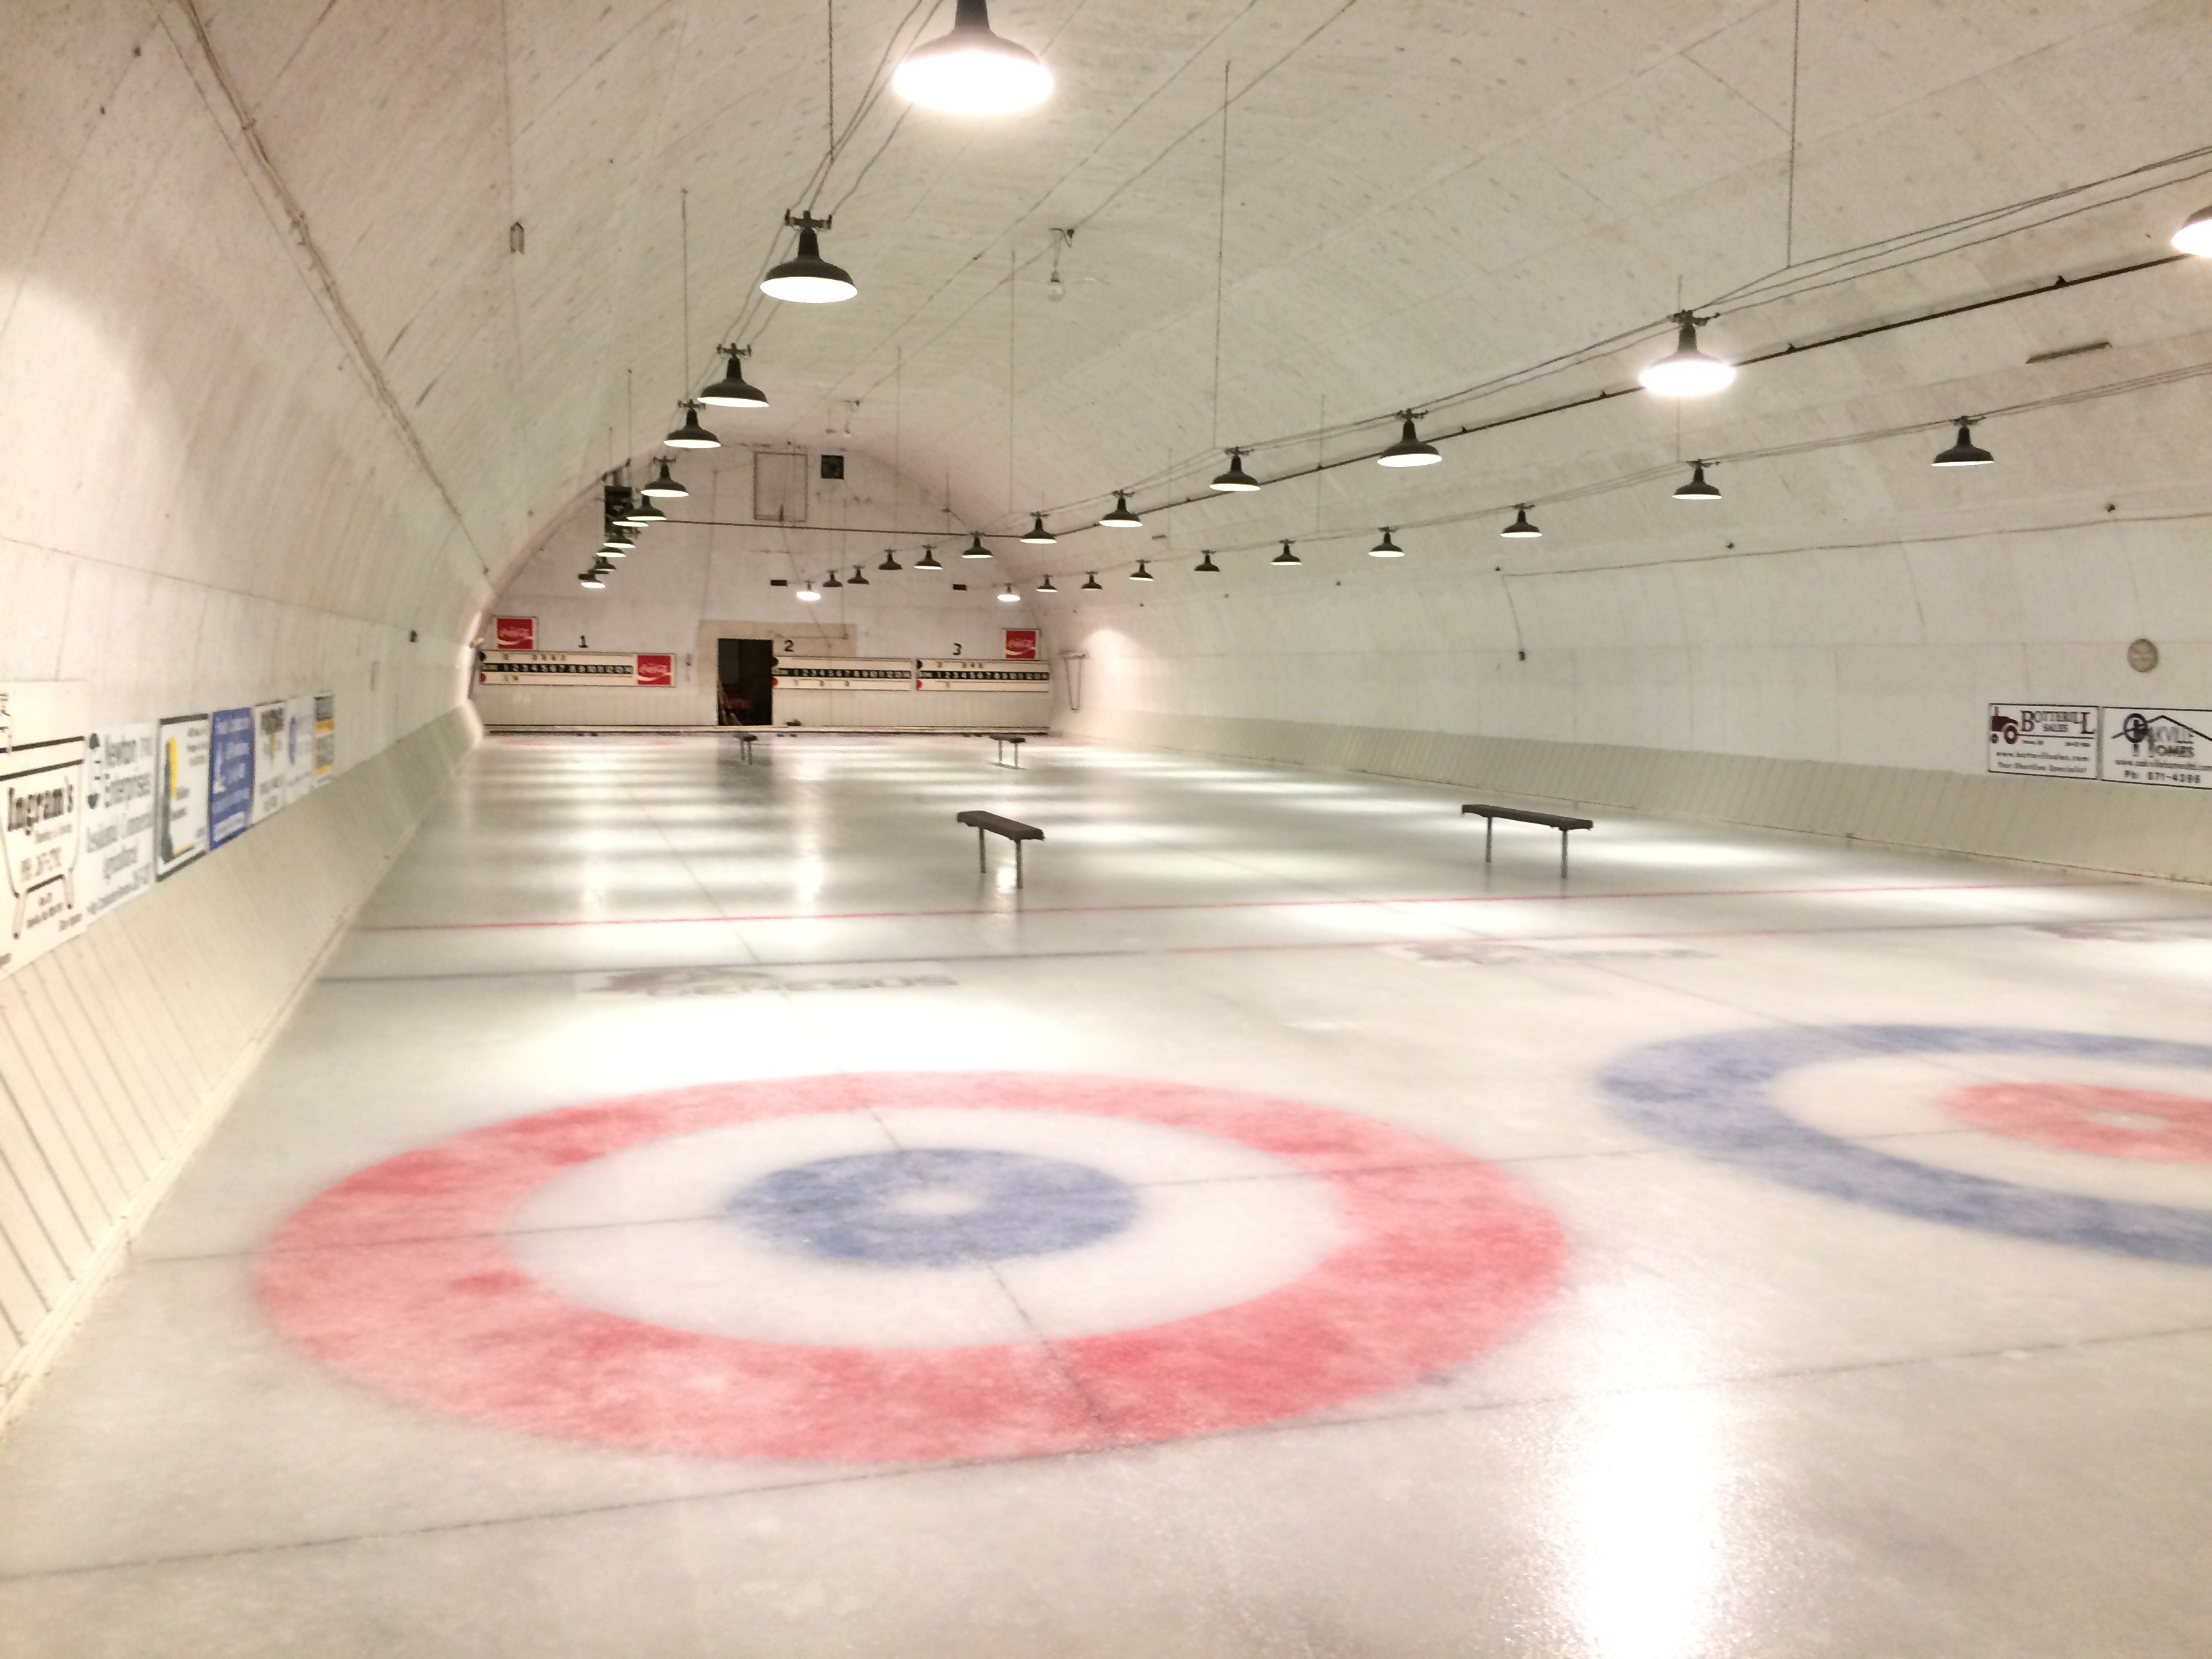 Ice level at the curling rink